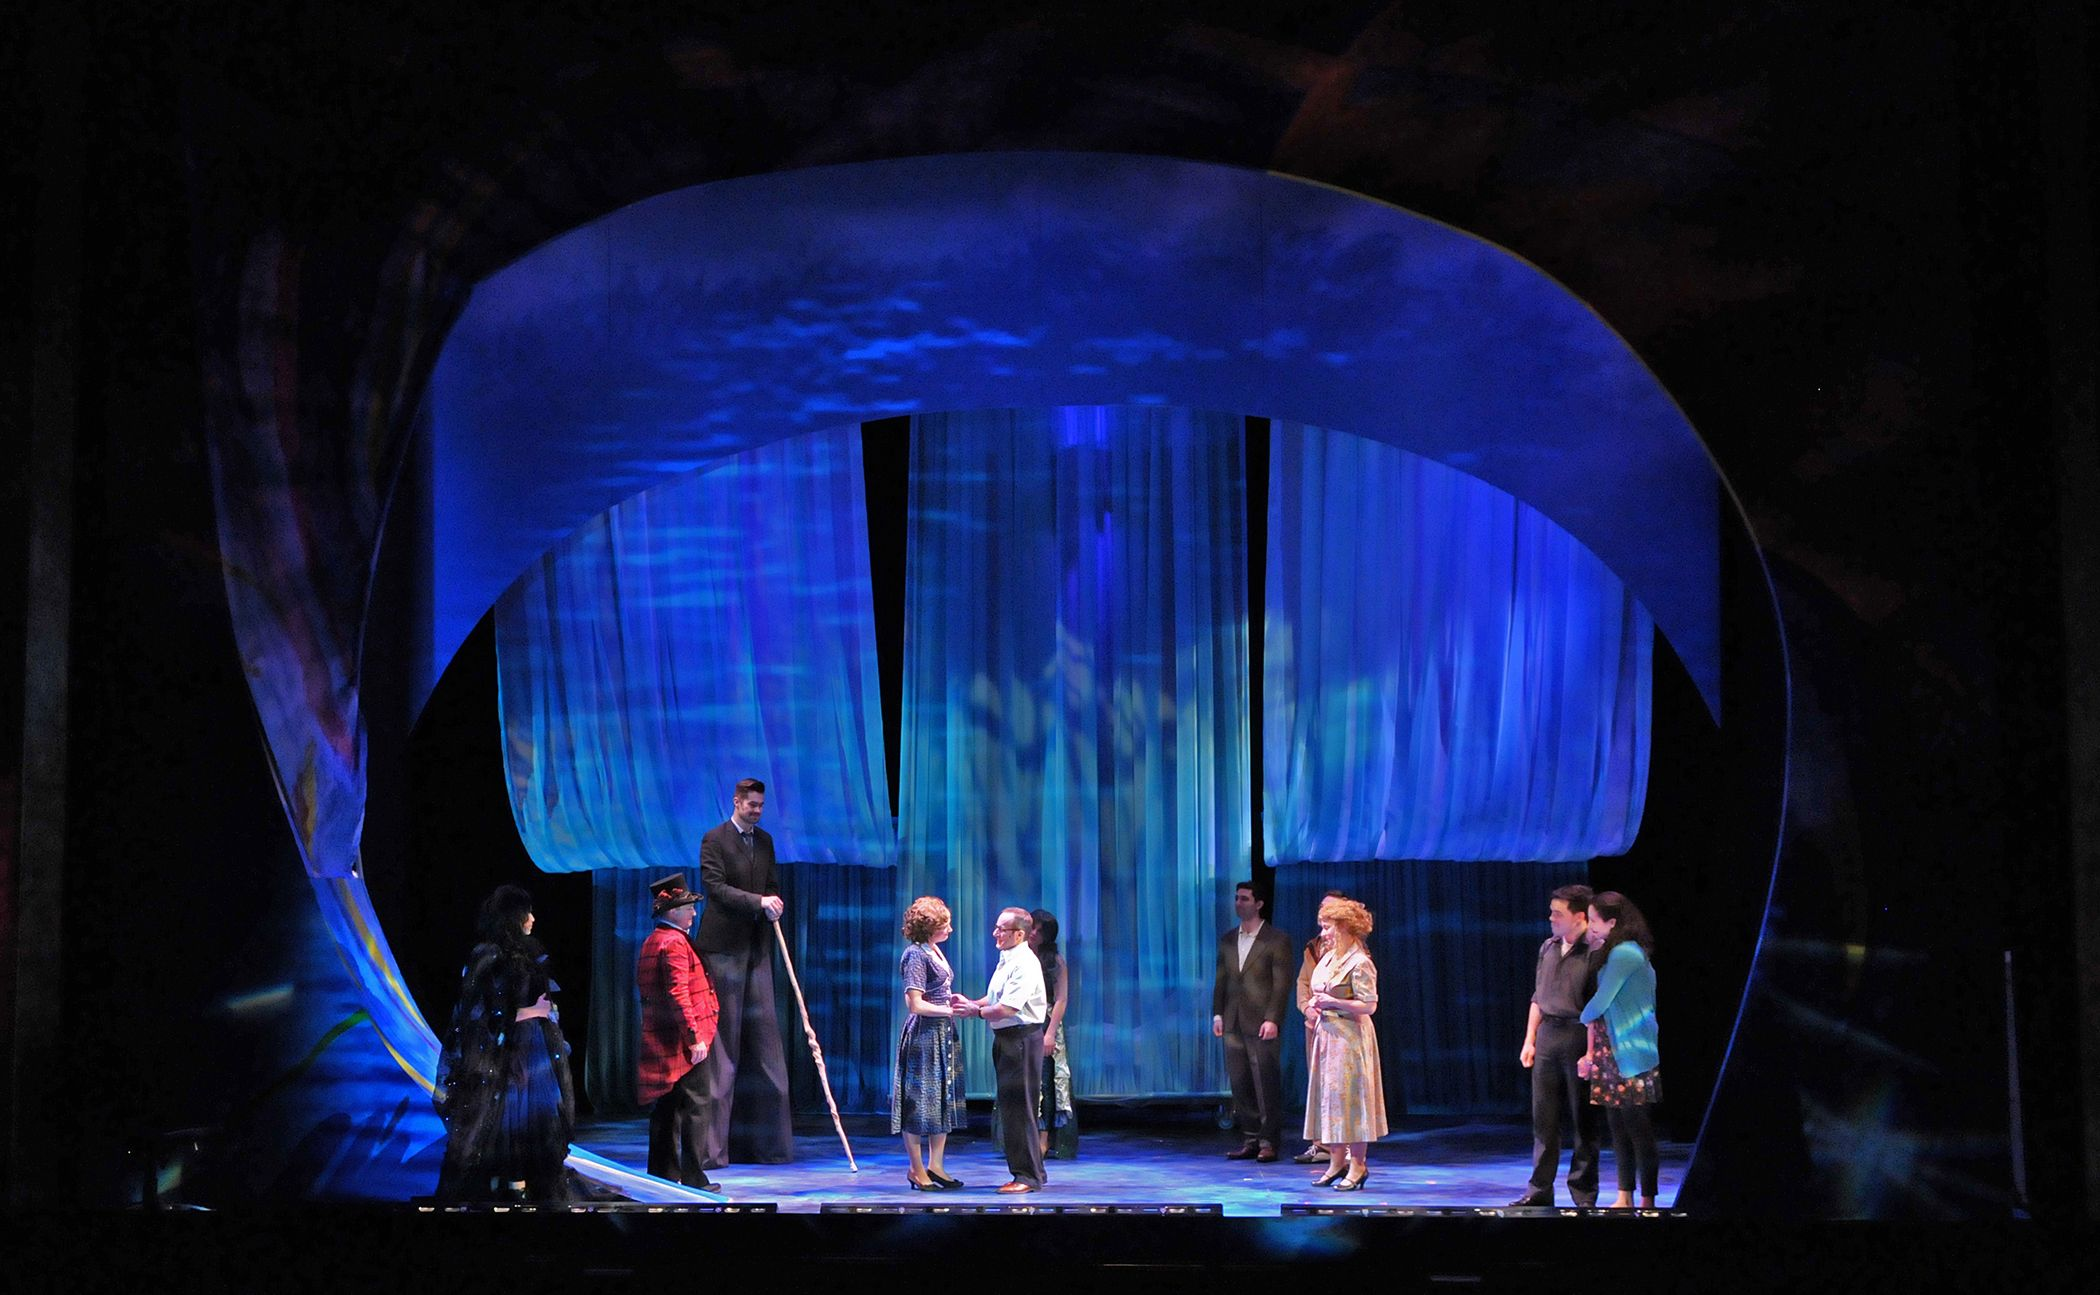 speakeasy stage company production - HD2100×1295